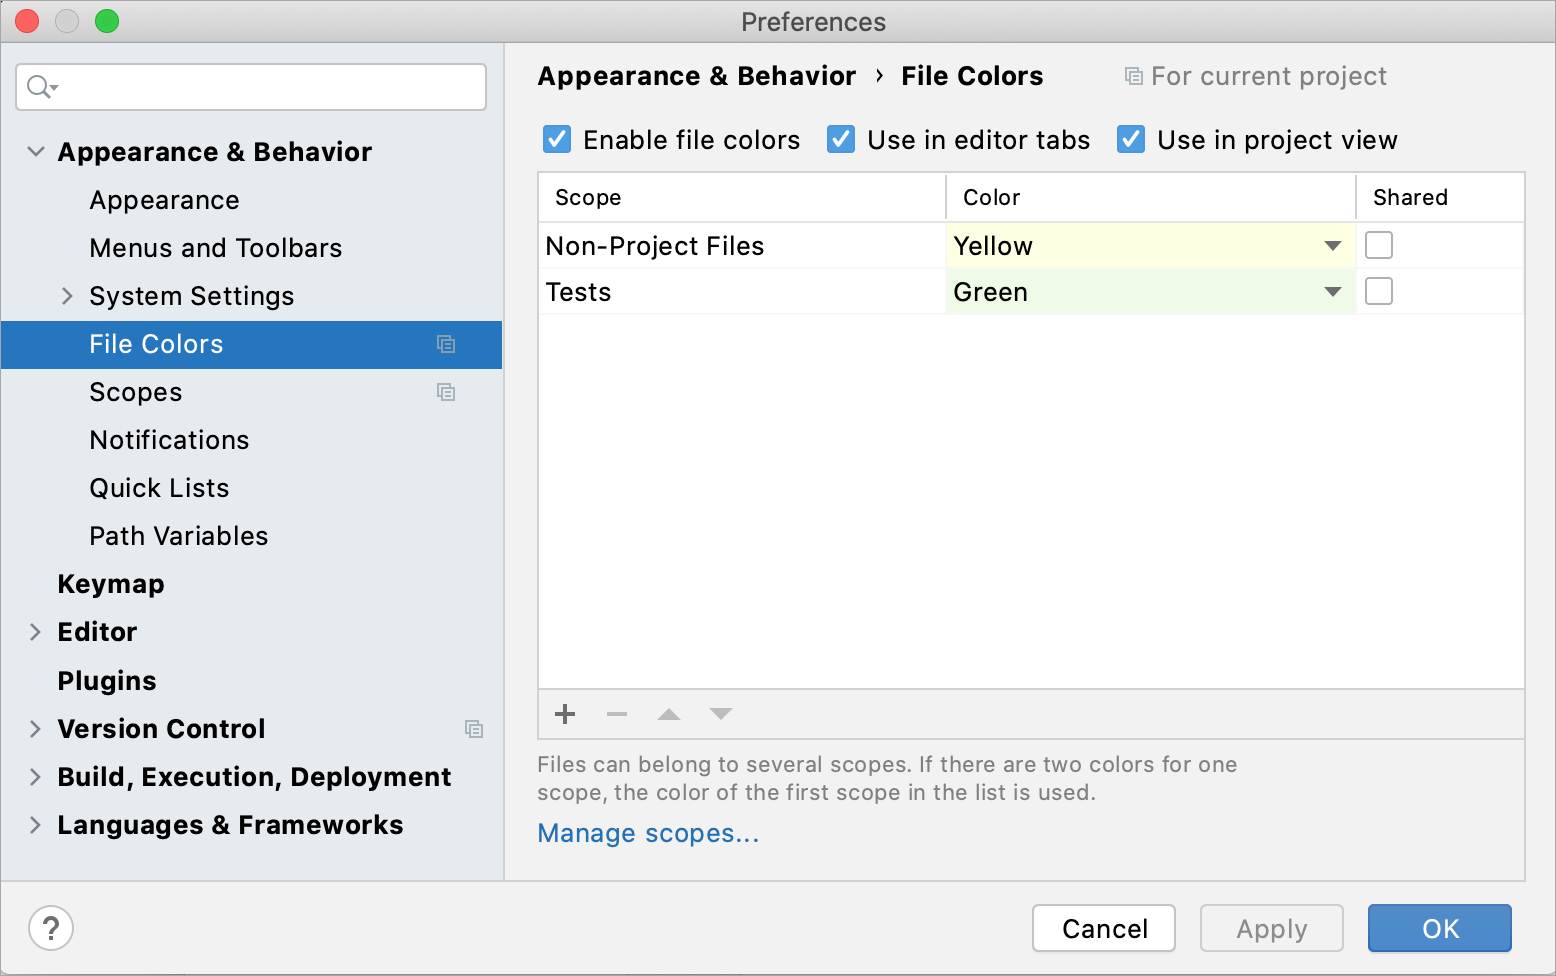 Configuring file colors in Settings/Preferences